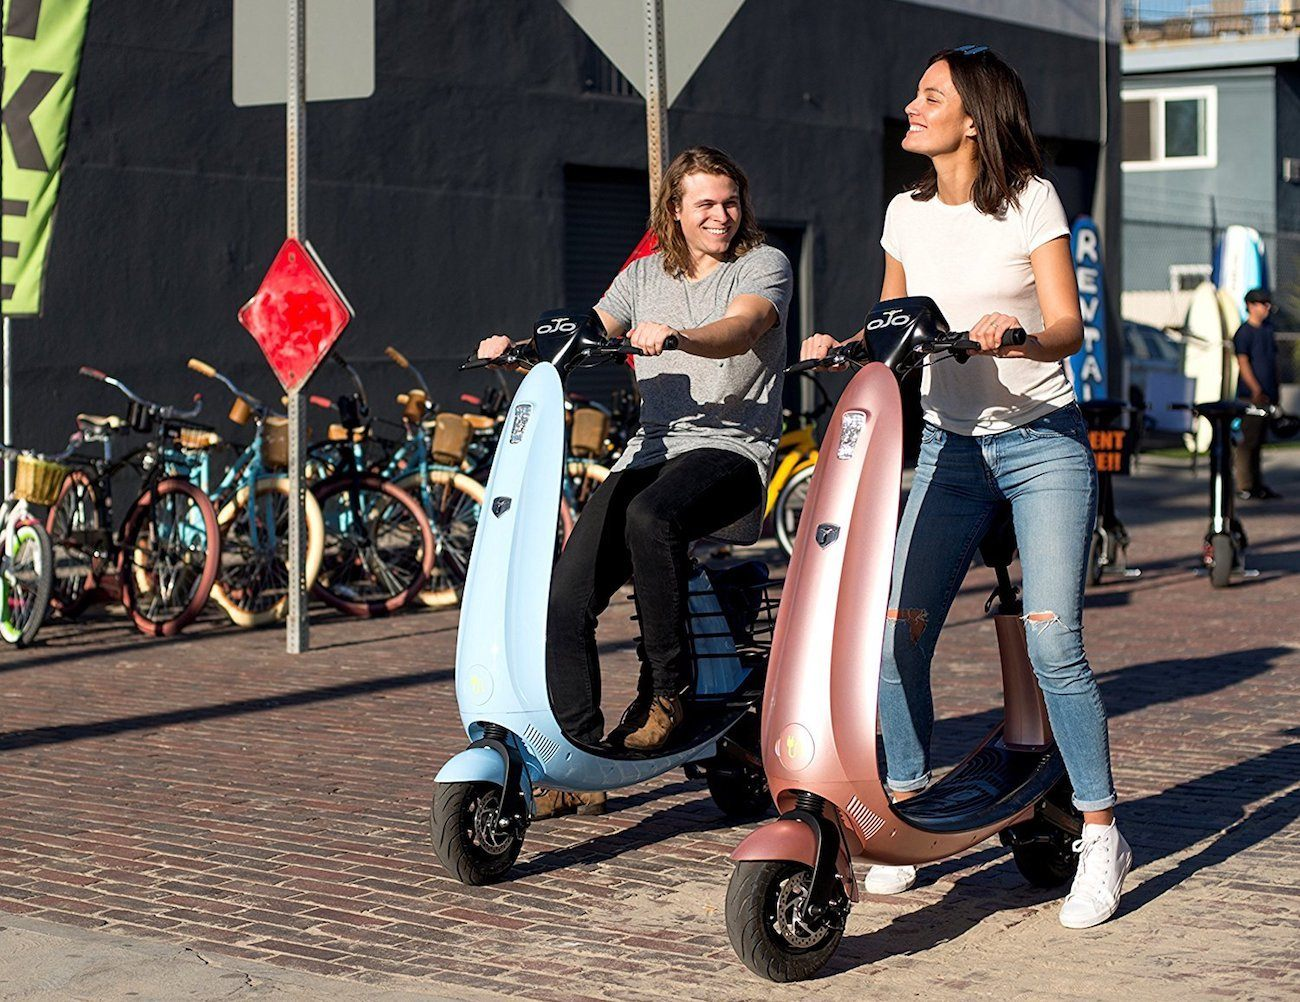 OJO, scooter, electric scooter